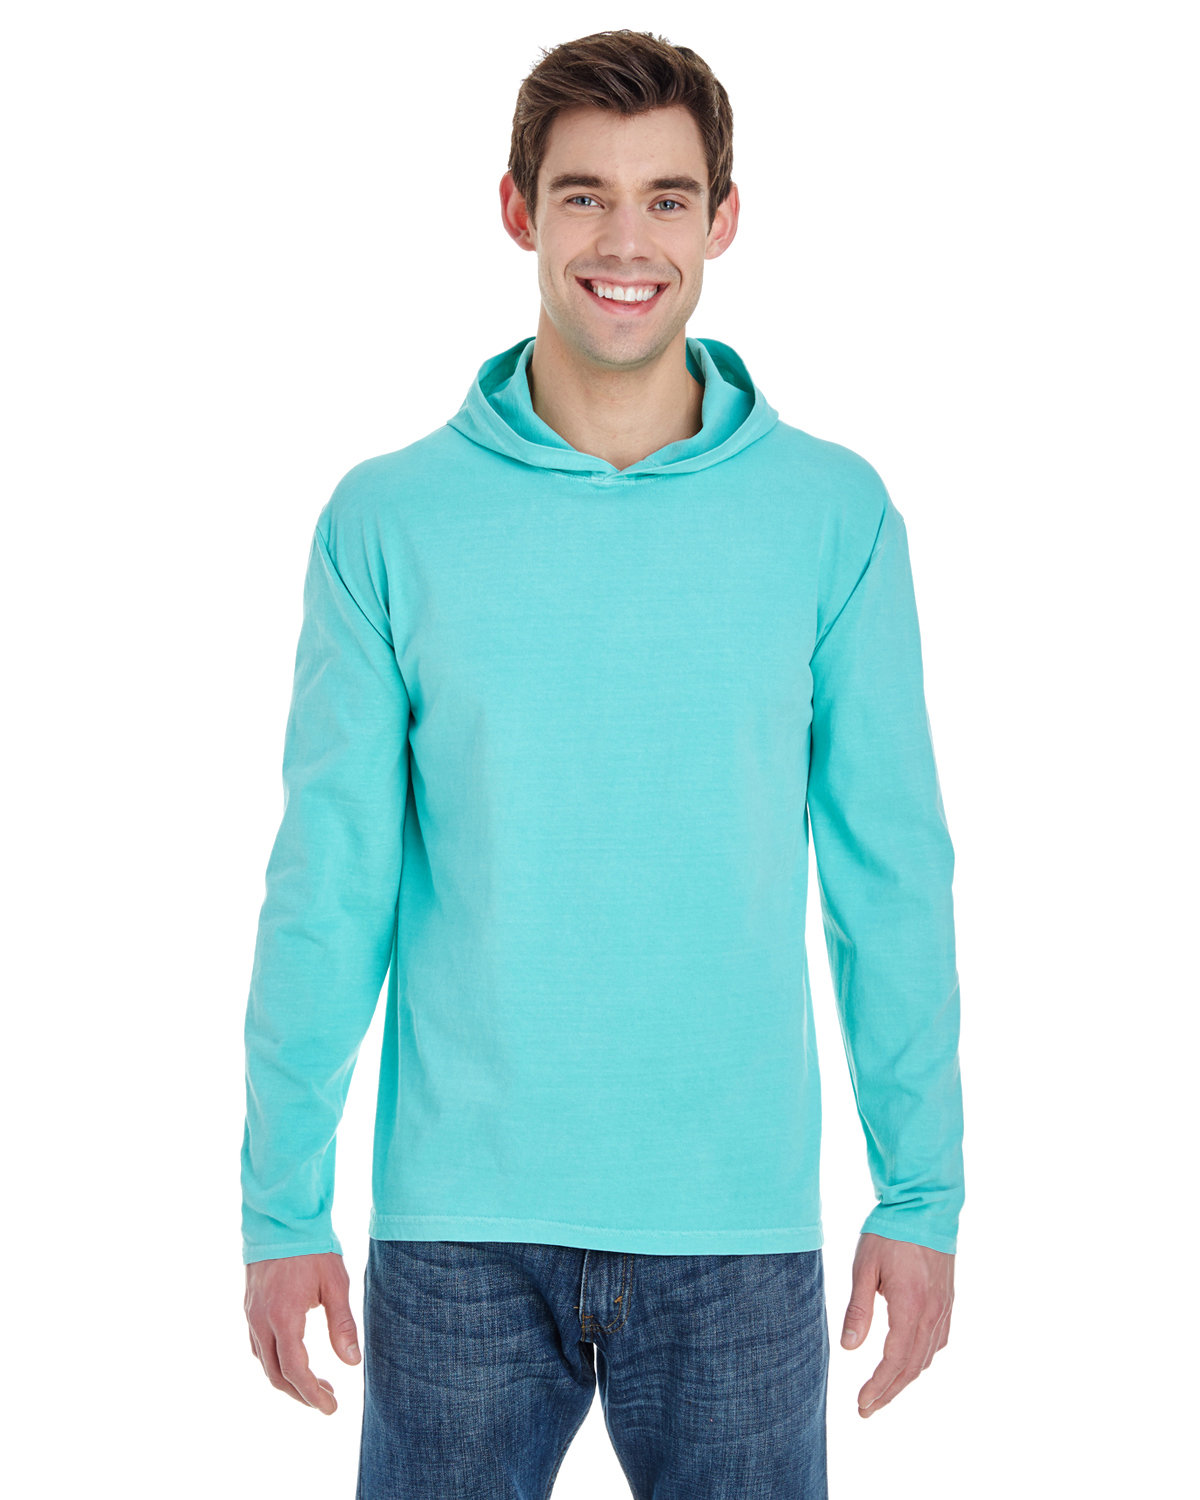 Comfort Colors Adult Heavyweight Long-Sleeve Hooded T-Shirt CHALKY MINT